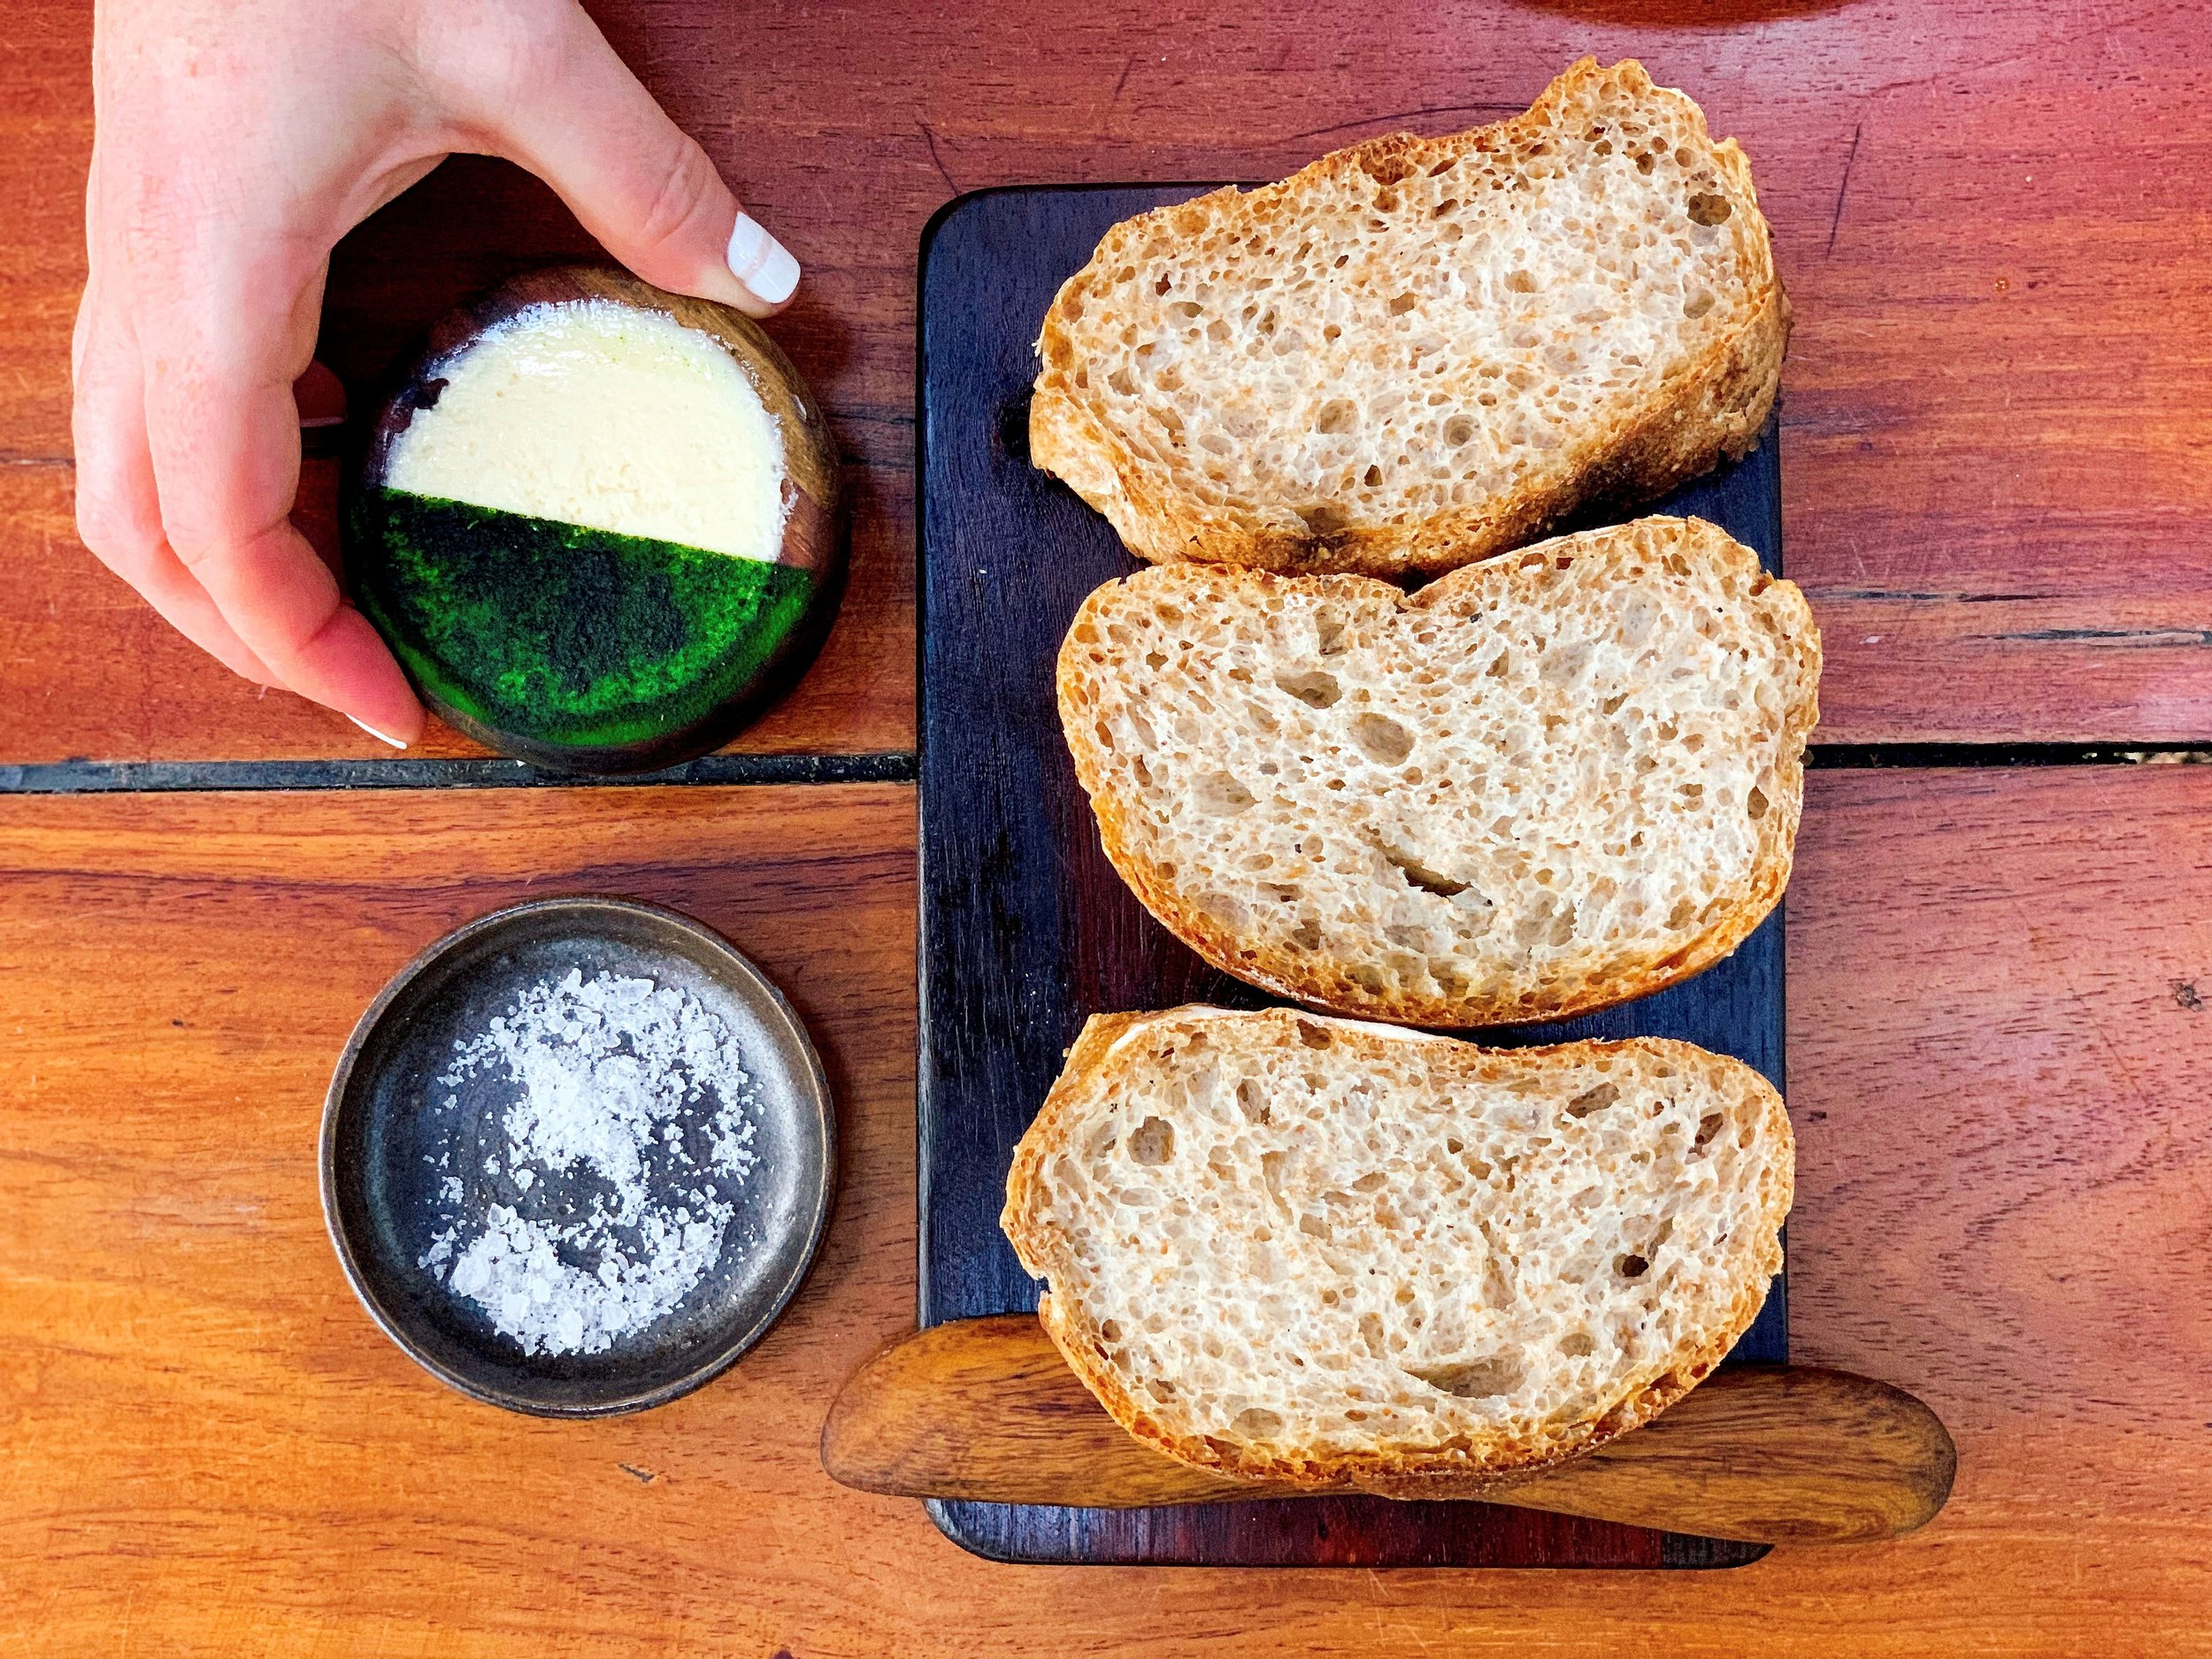 House Pulove Sourdough Bread From The Wood Fire Oven + Local Amish Butter + Mayan Salt From Celestum